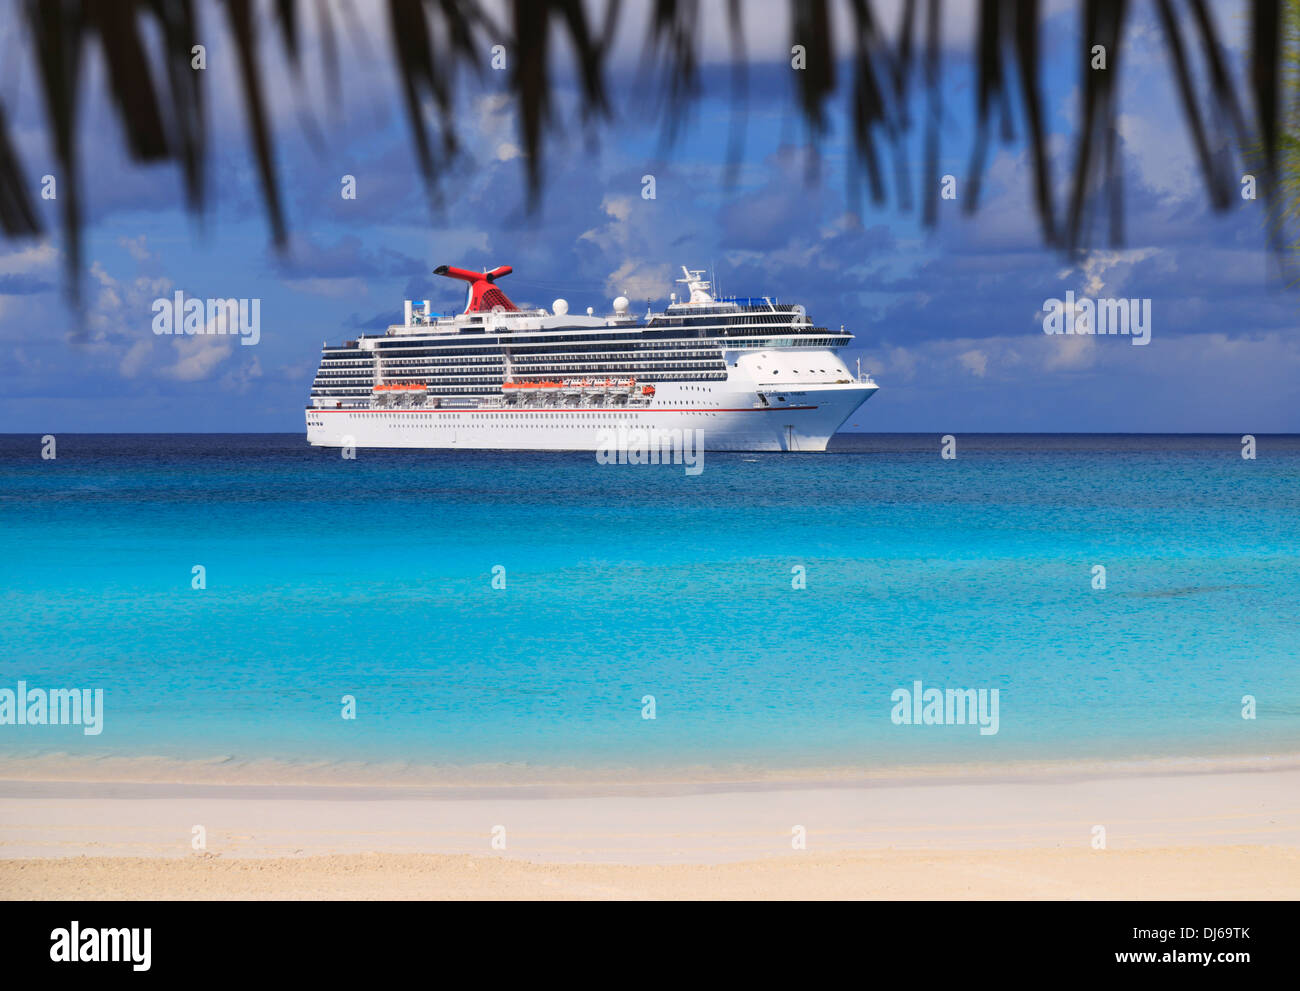 Cruise line ship in Caribbean sea - Stock Image